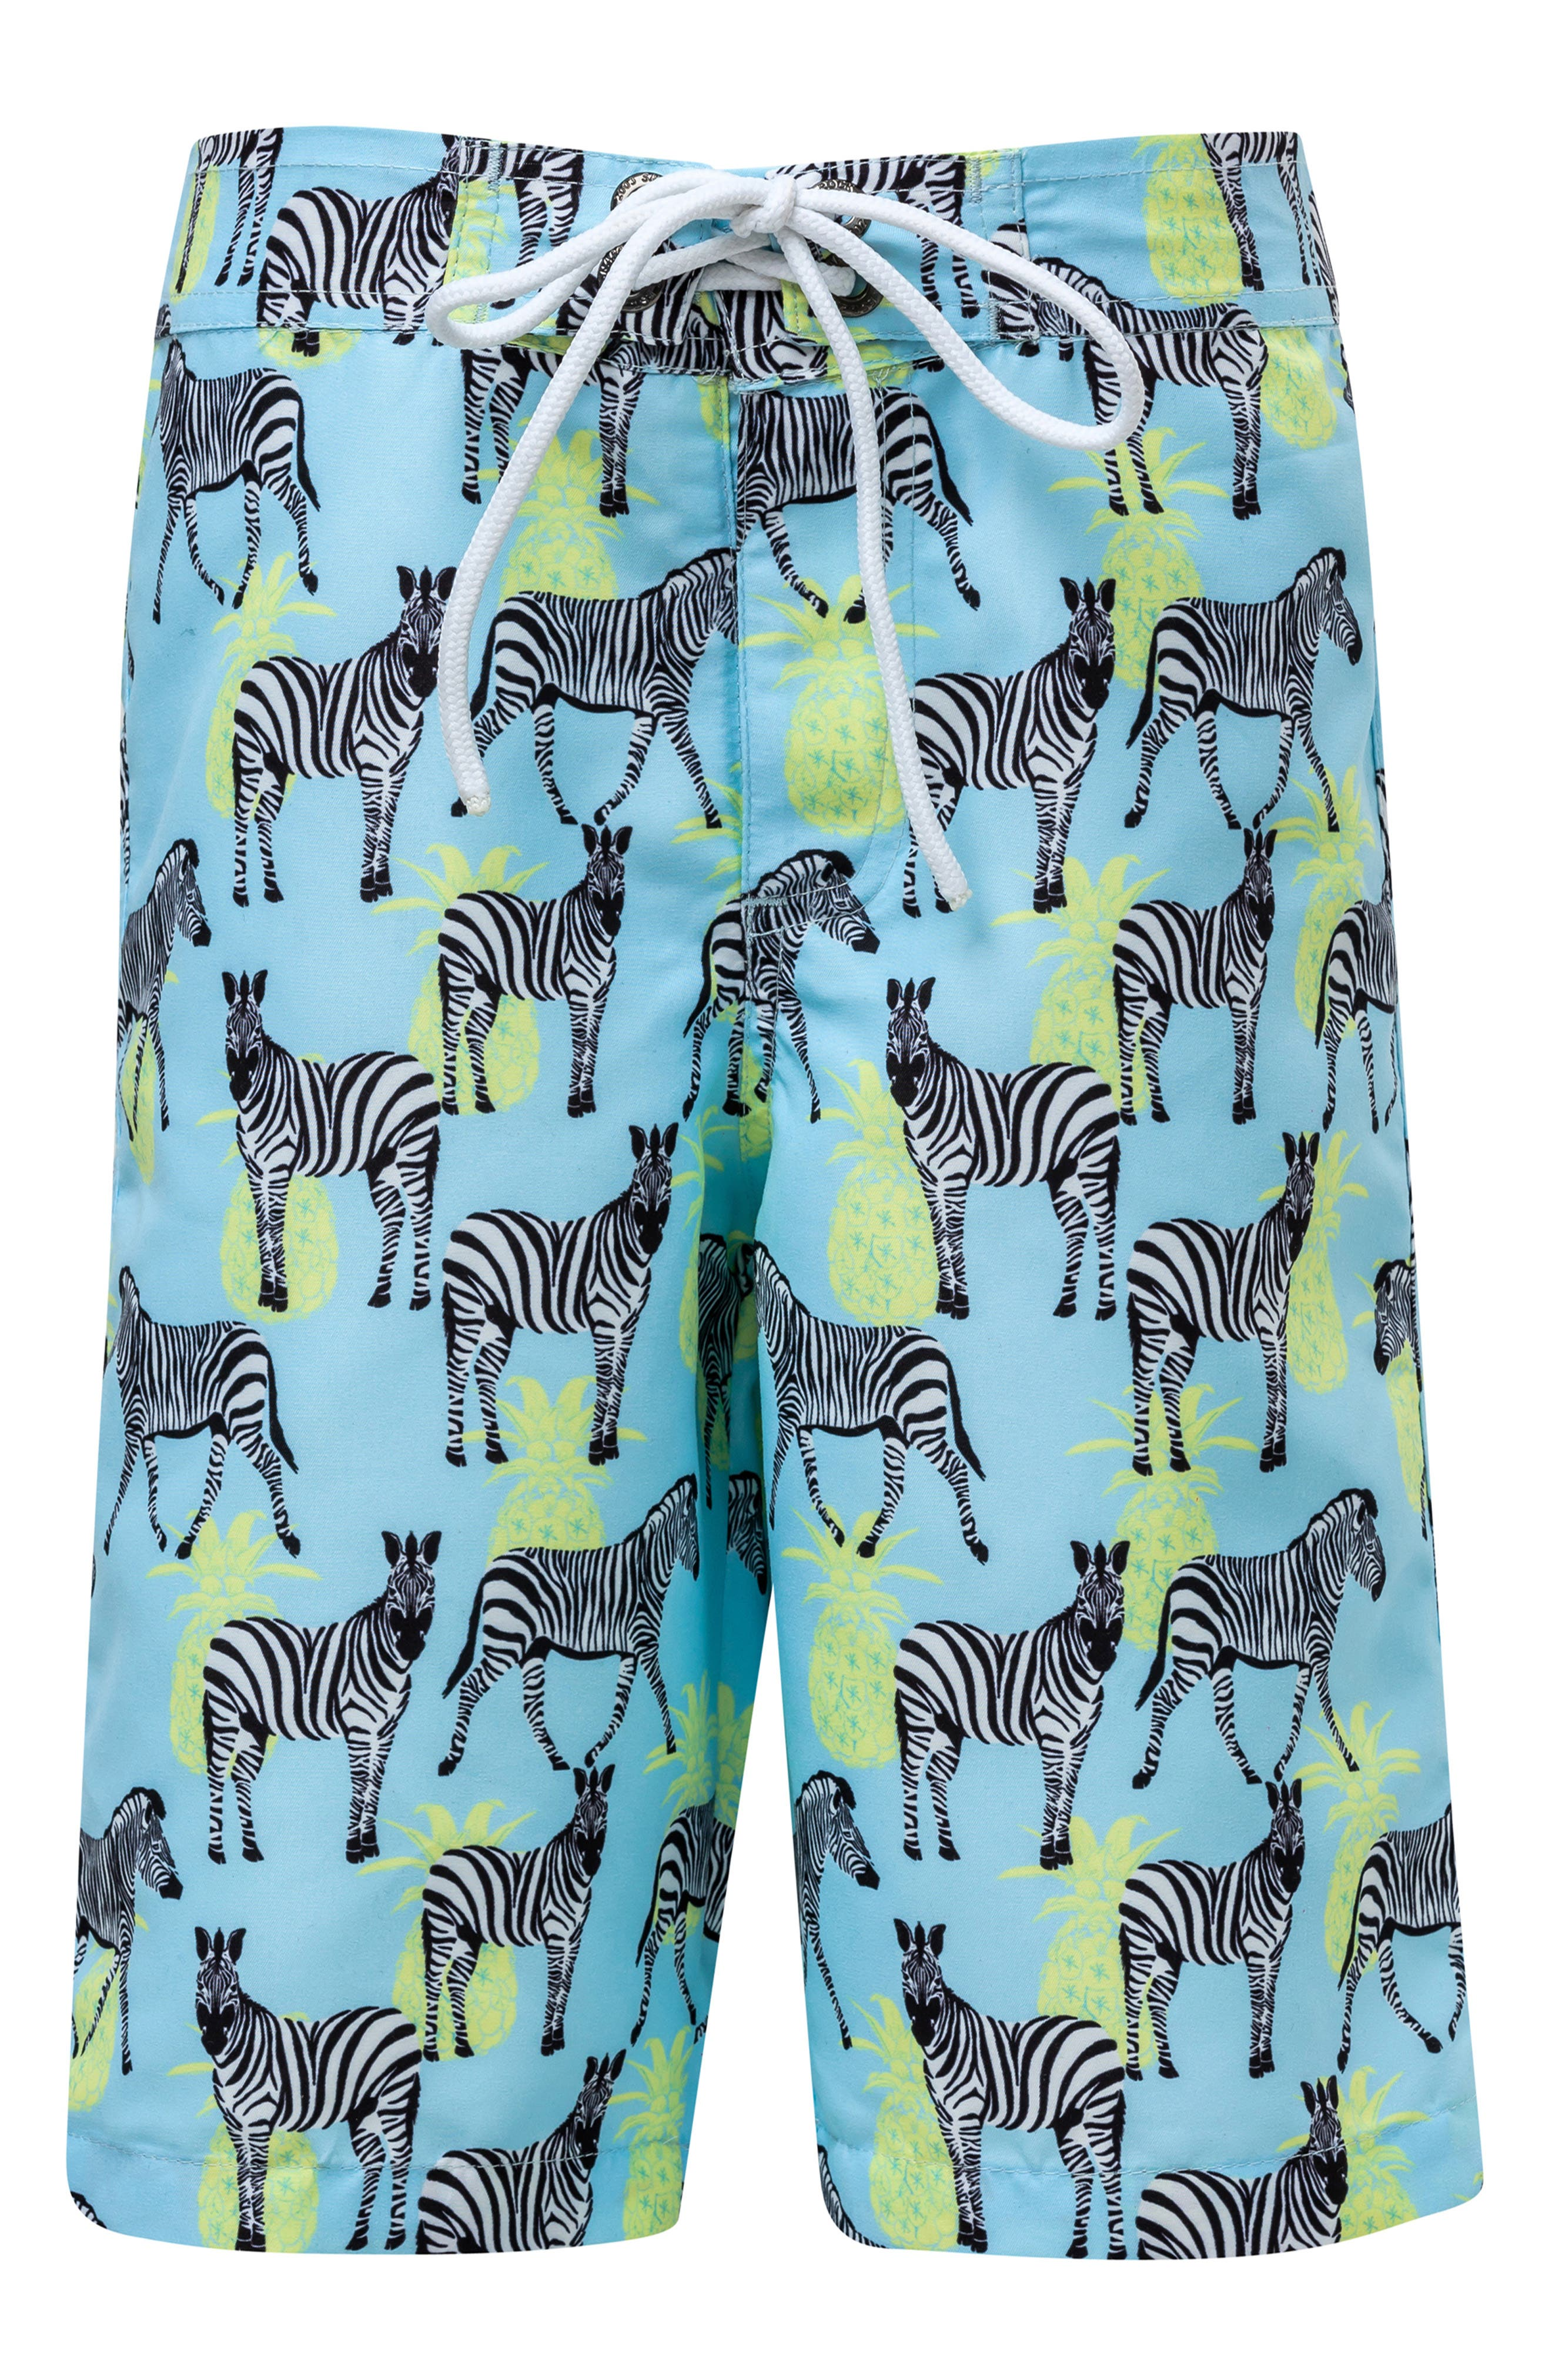 SNAPPER ROCK,                             Zebra Crossing True Board Shorts,                             Main thumbnail 1, color,                             BLUE